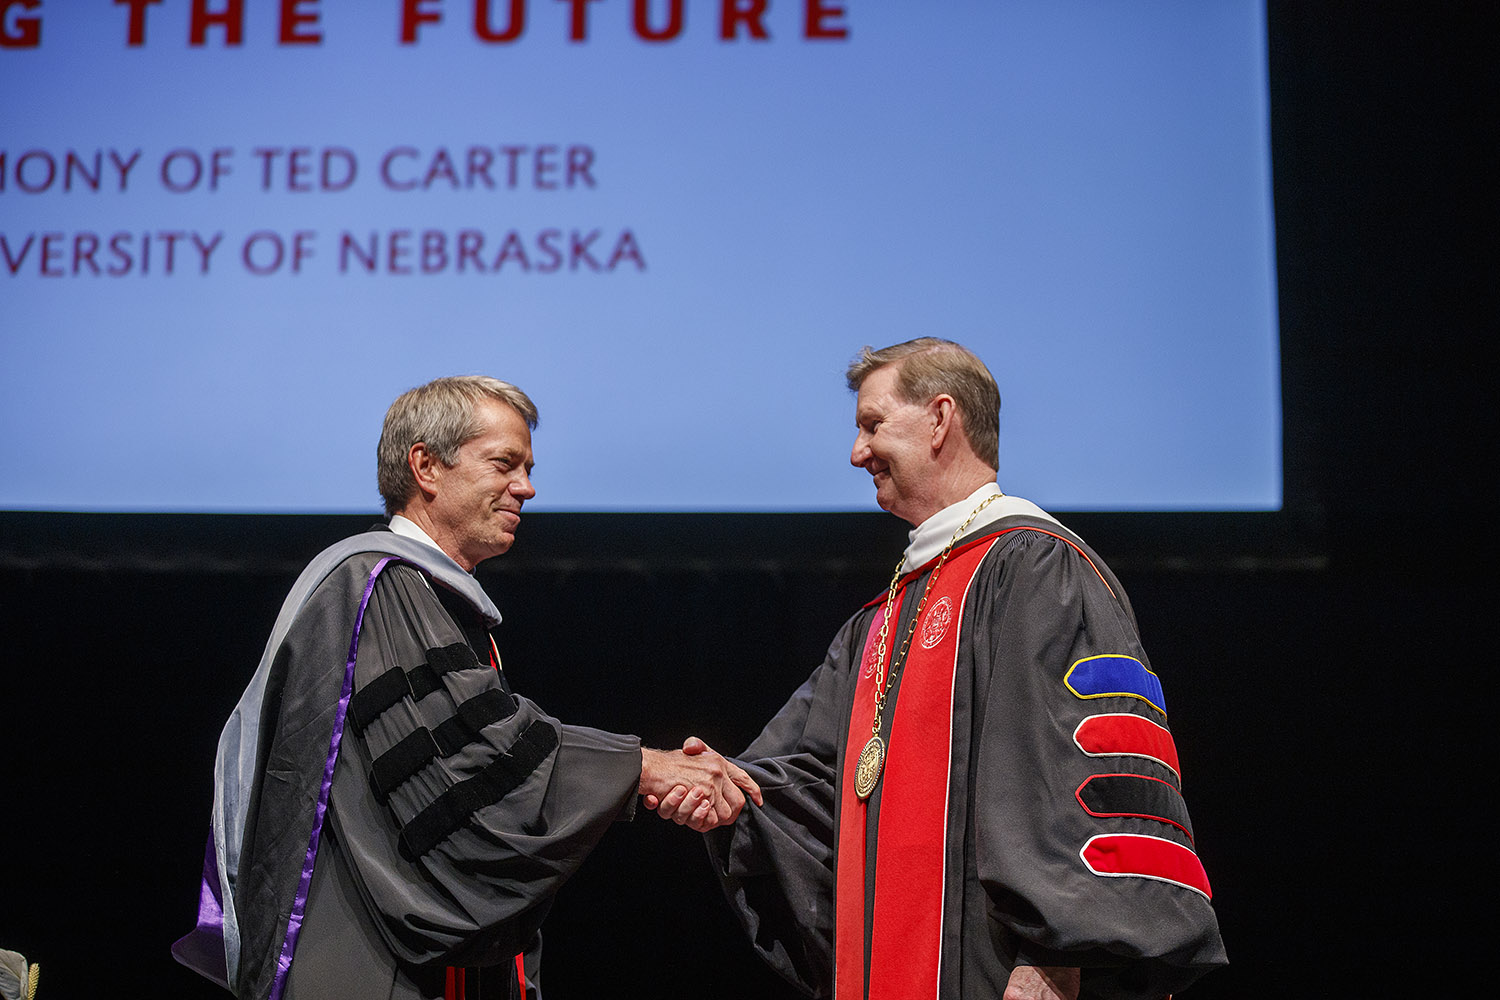 University of Nebraska President Ted Carter, right, receives congratulations from Board of Regents Chairman Jim Pillen during Friday's investiture ceremony. (Photos by Craig Chandler, UNL Communications)